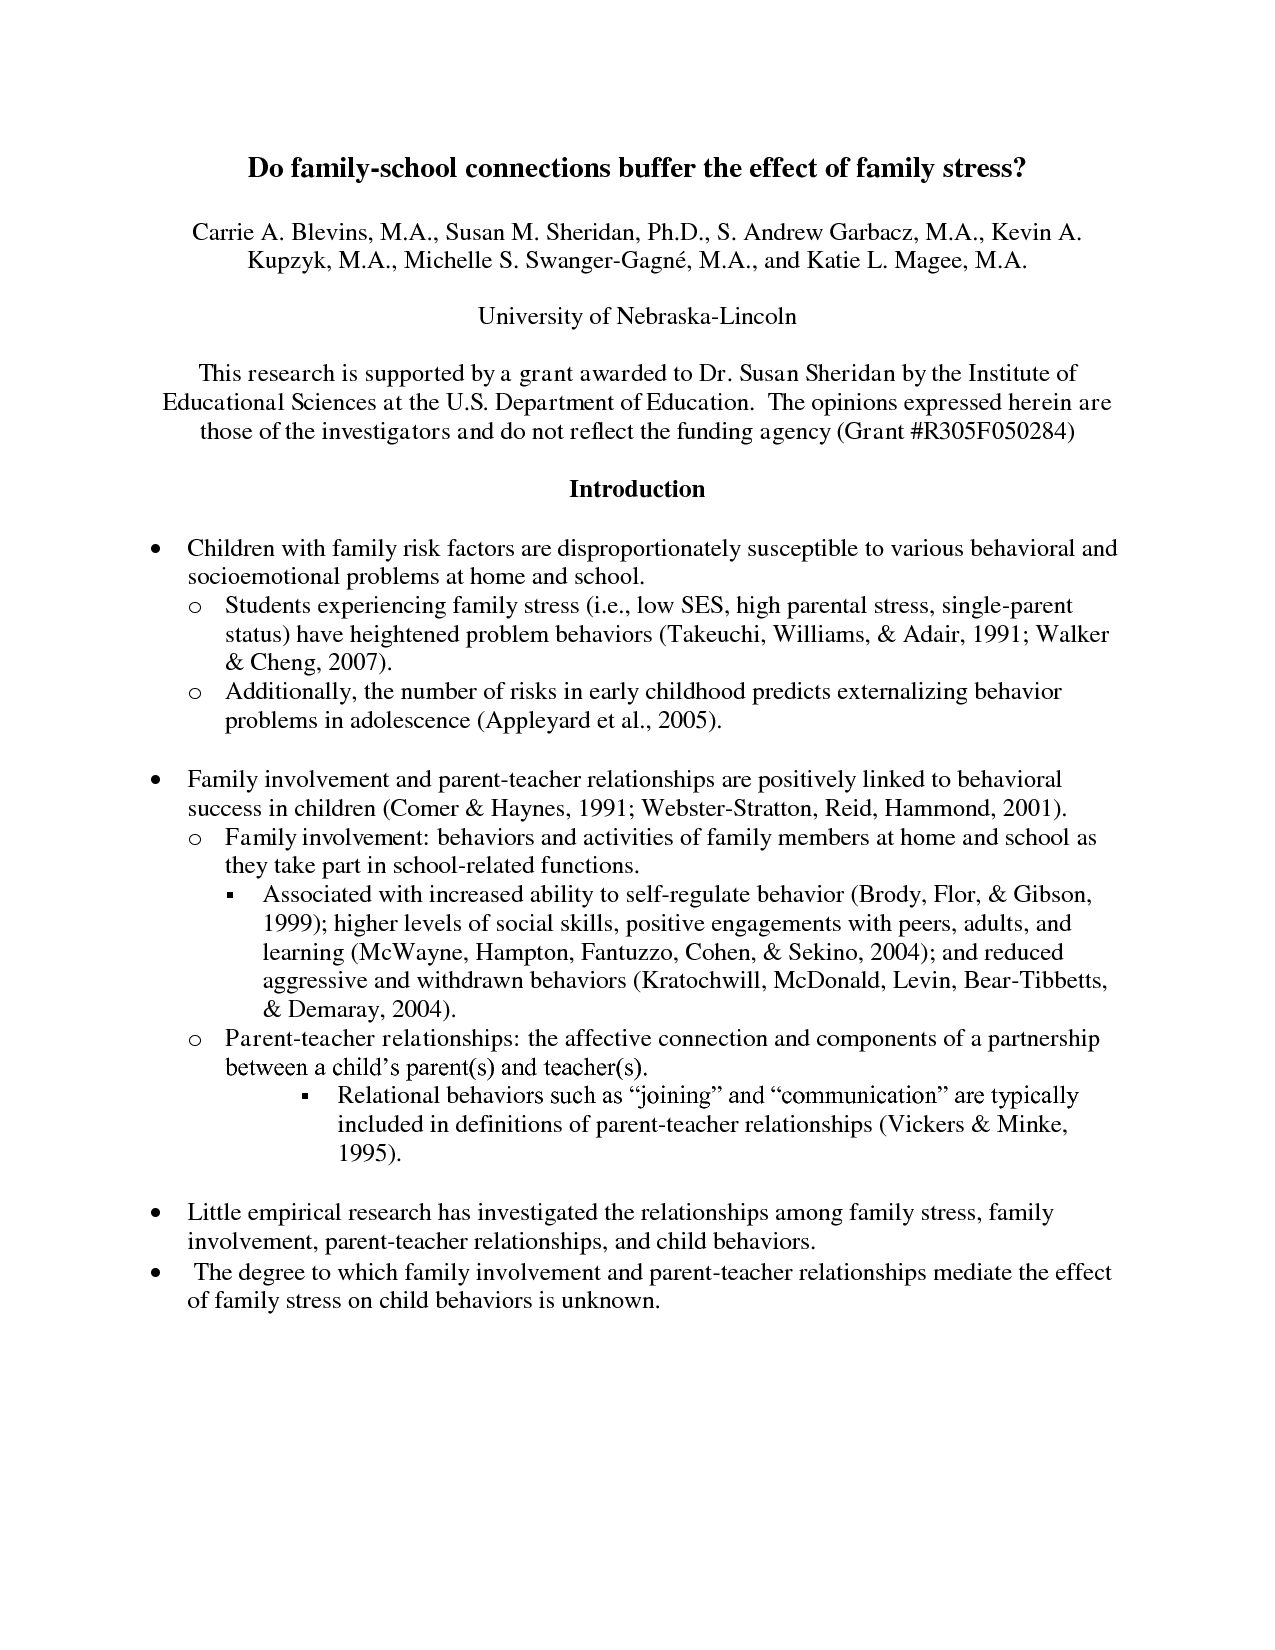 001 Research Paper Apa Review Format Dreaded Style Literature Sample Full